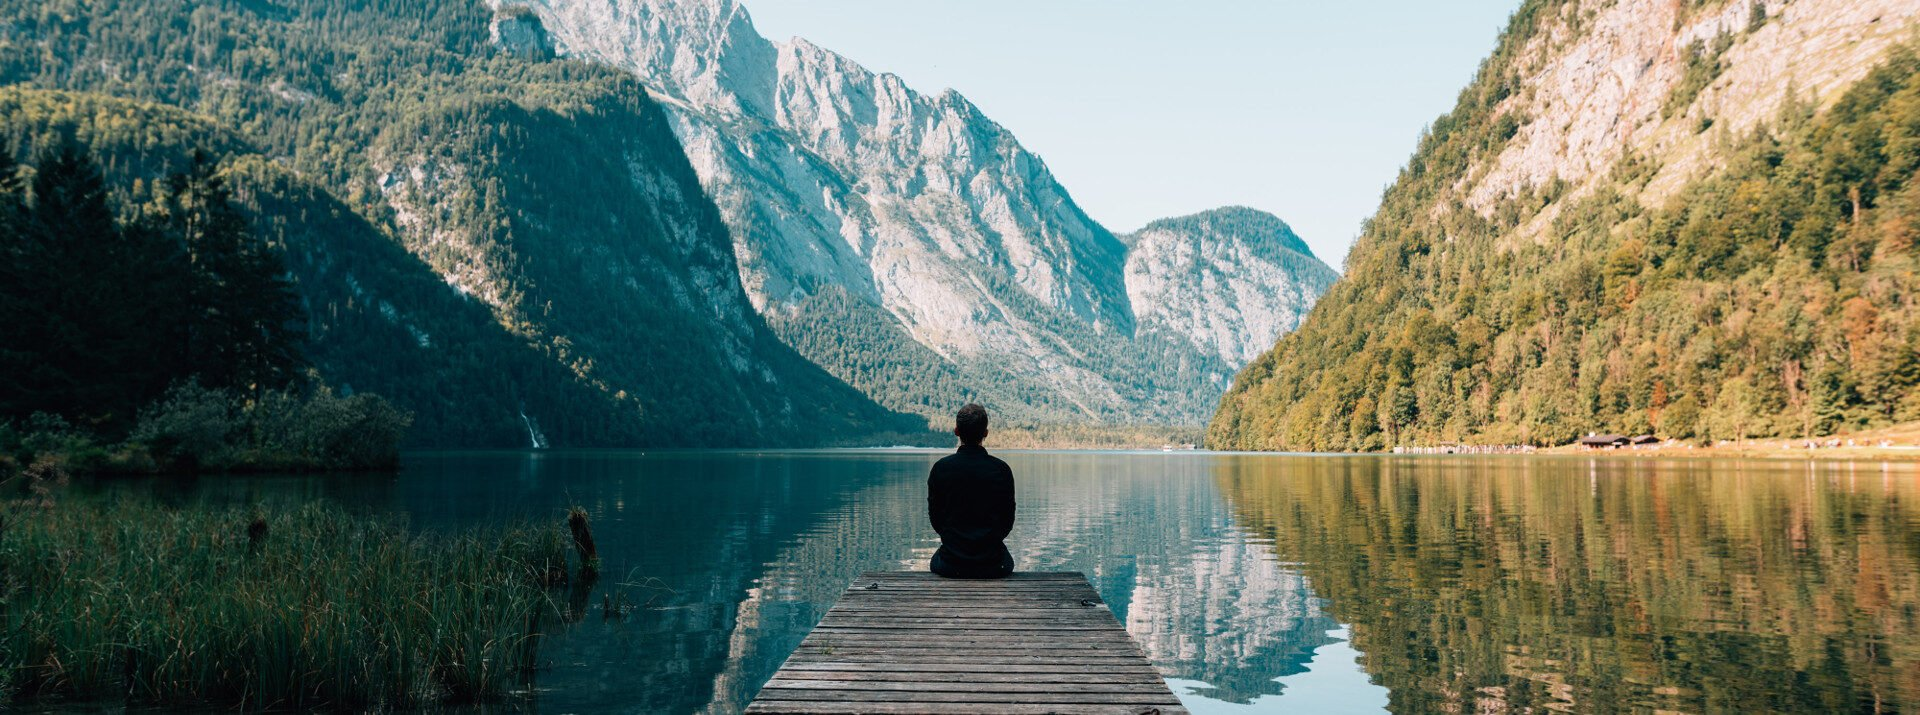 Woman sitting on a dock at a lake surrounded by mountains